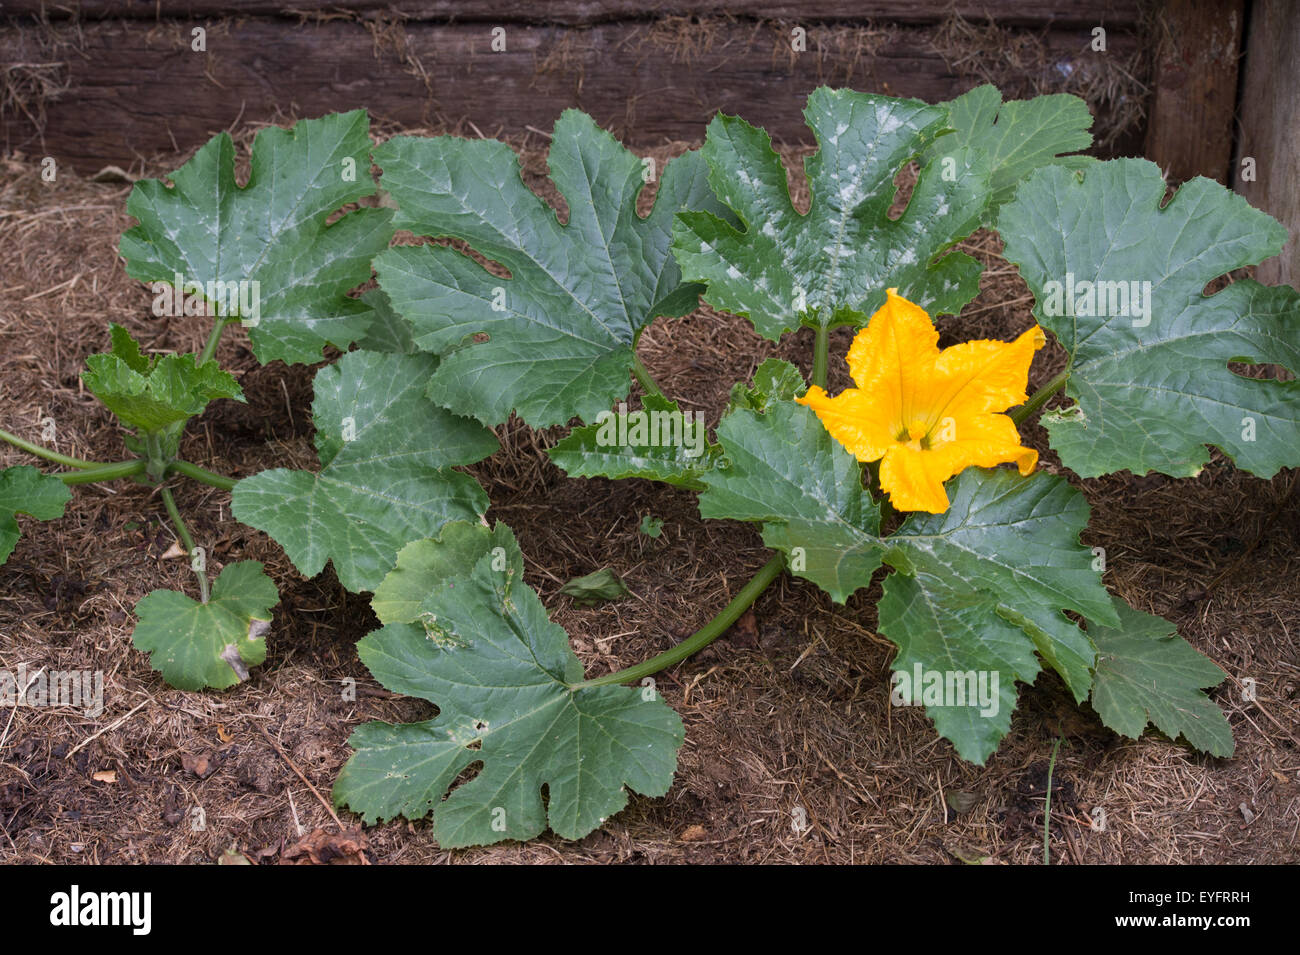 Cucurbita pepo. Courgette plant in flower growing in a compost heap - Stock Image